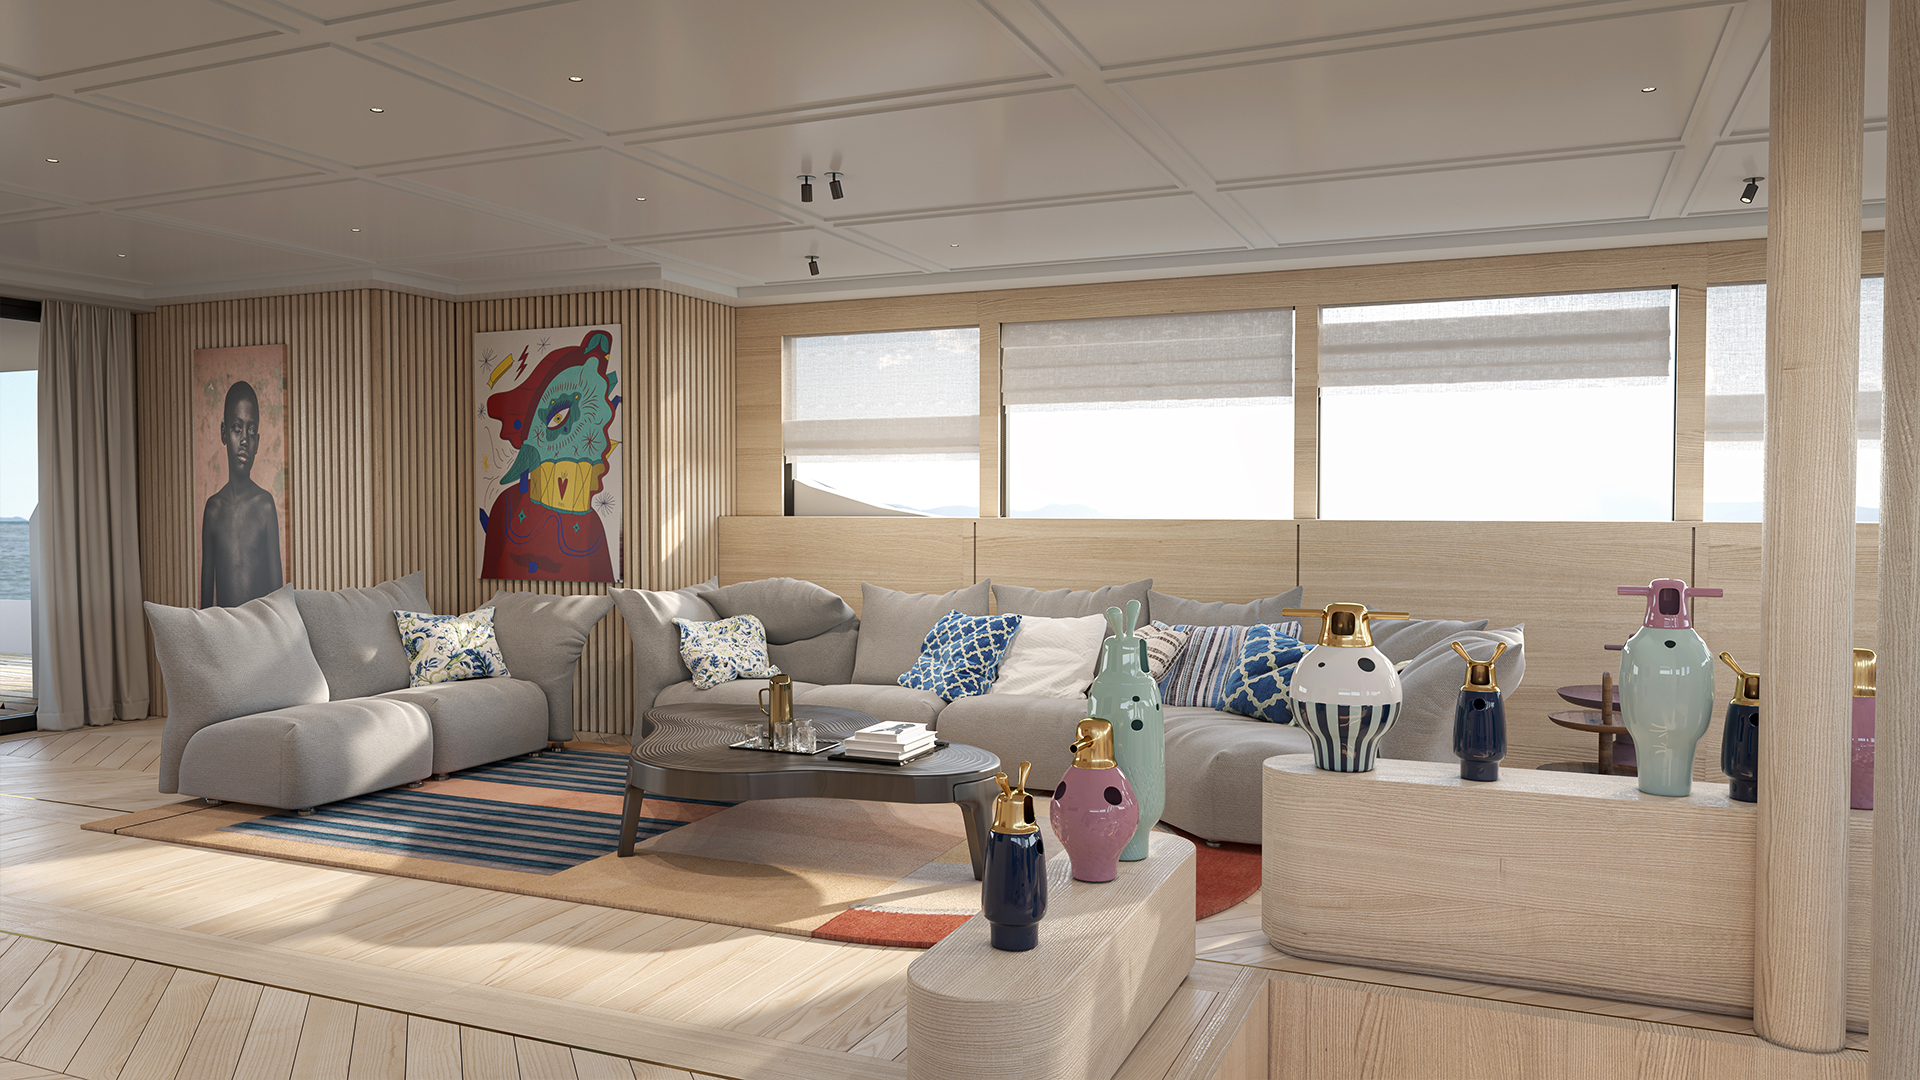 Maayan-Golan_Architectural-Visualization_interior-visualization_yacht-design_living-room_design-by-rust_08